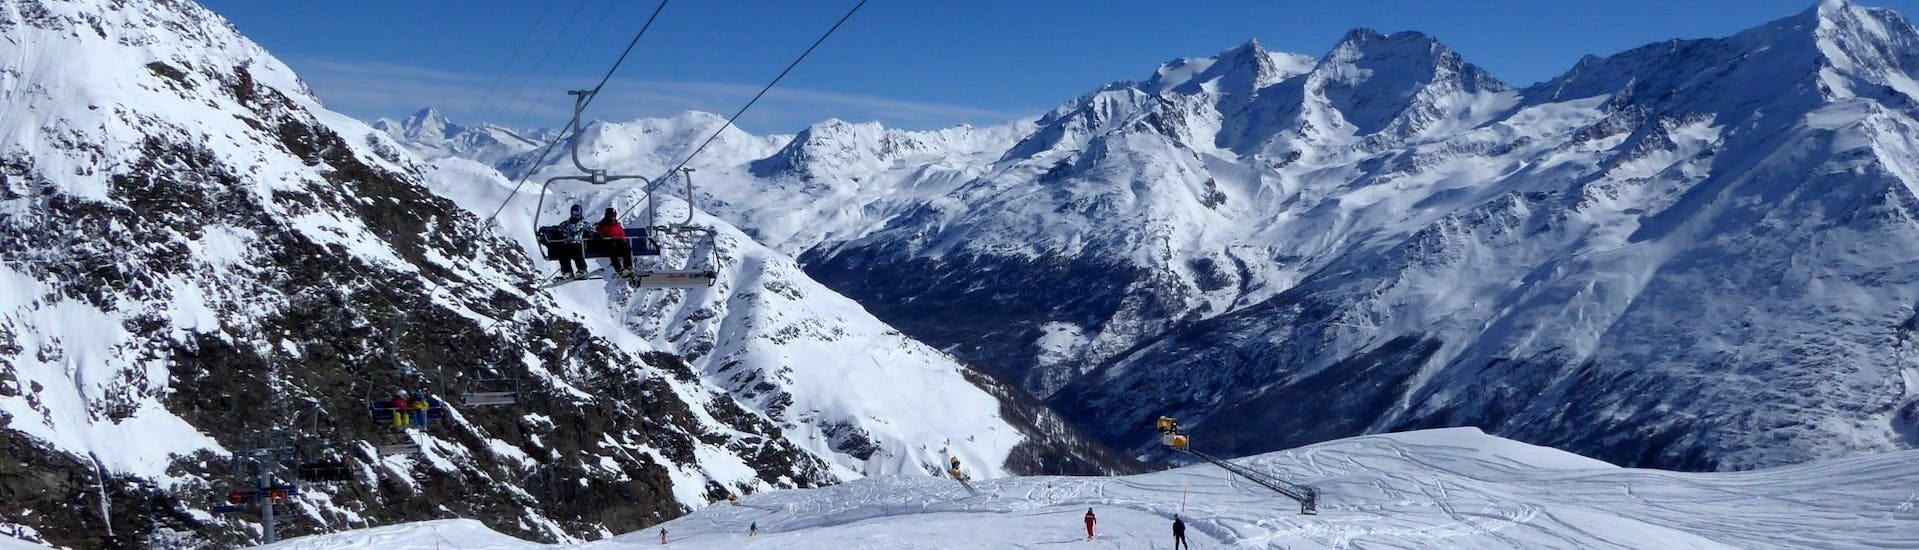 View over the sunny mountain landscape while learning to ski with the ski schools in Saas Fee.